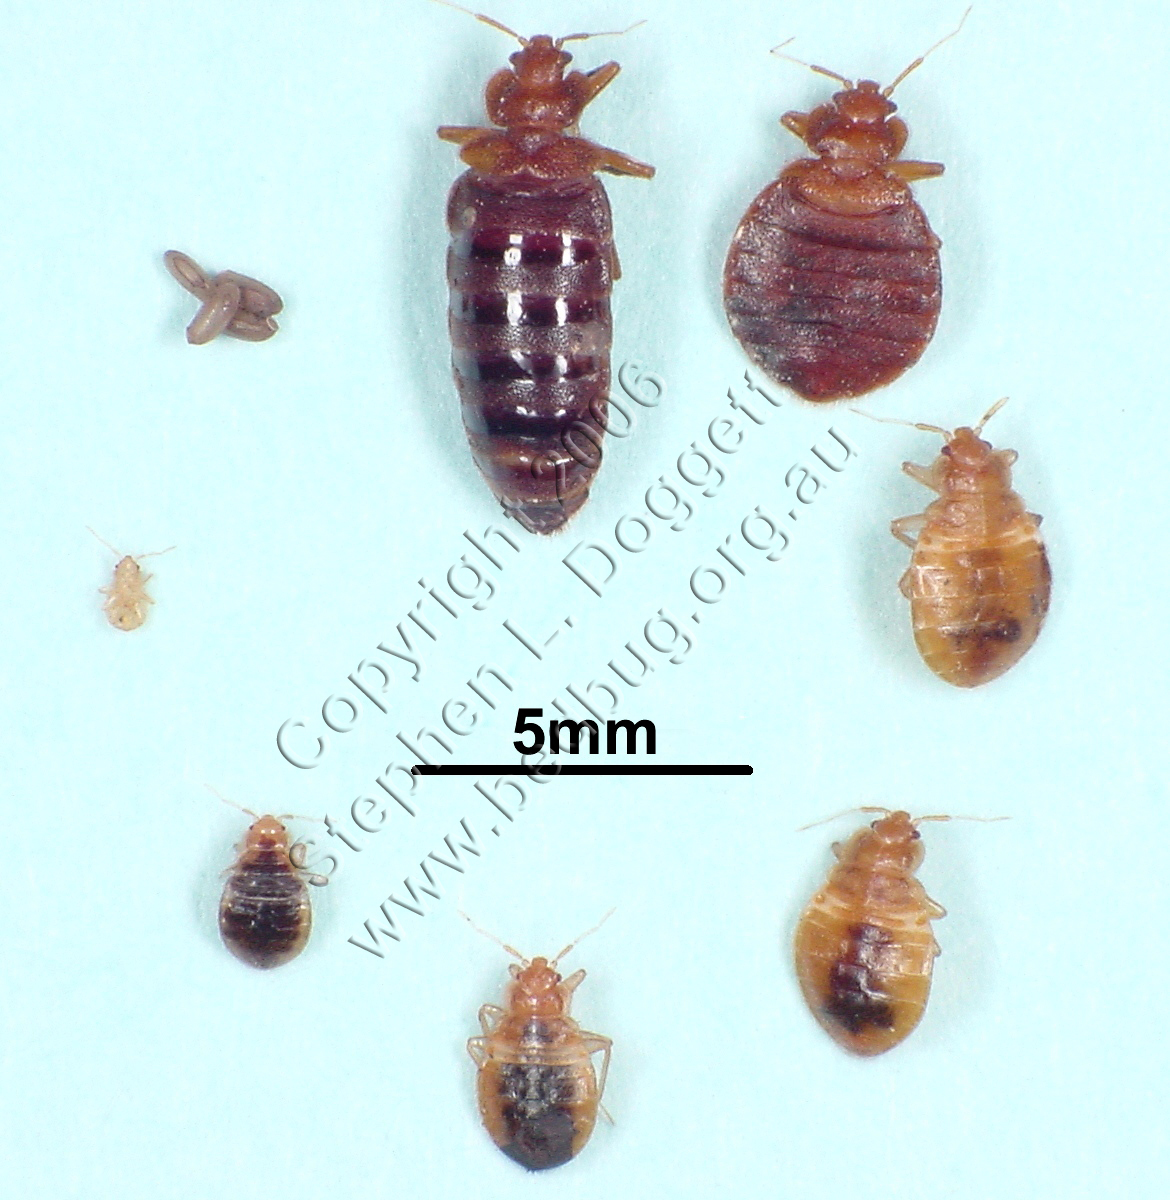 Getting Rid Of Bed Bugs Quickly Dead Bed Bug Blog